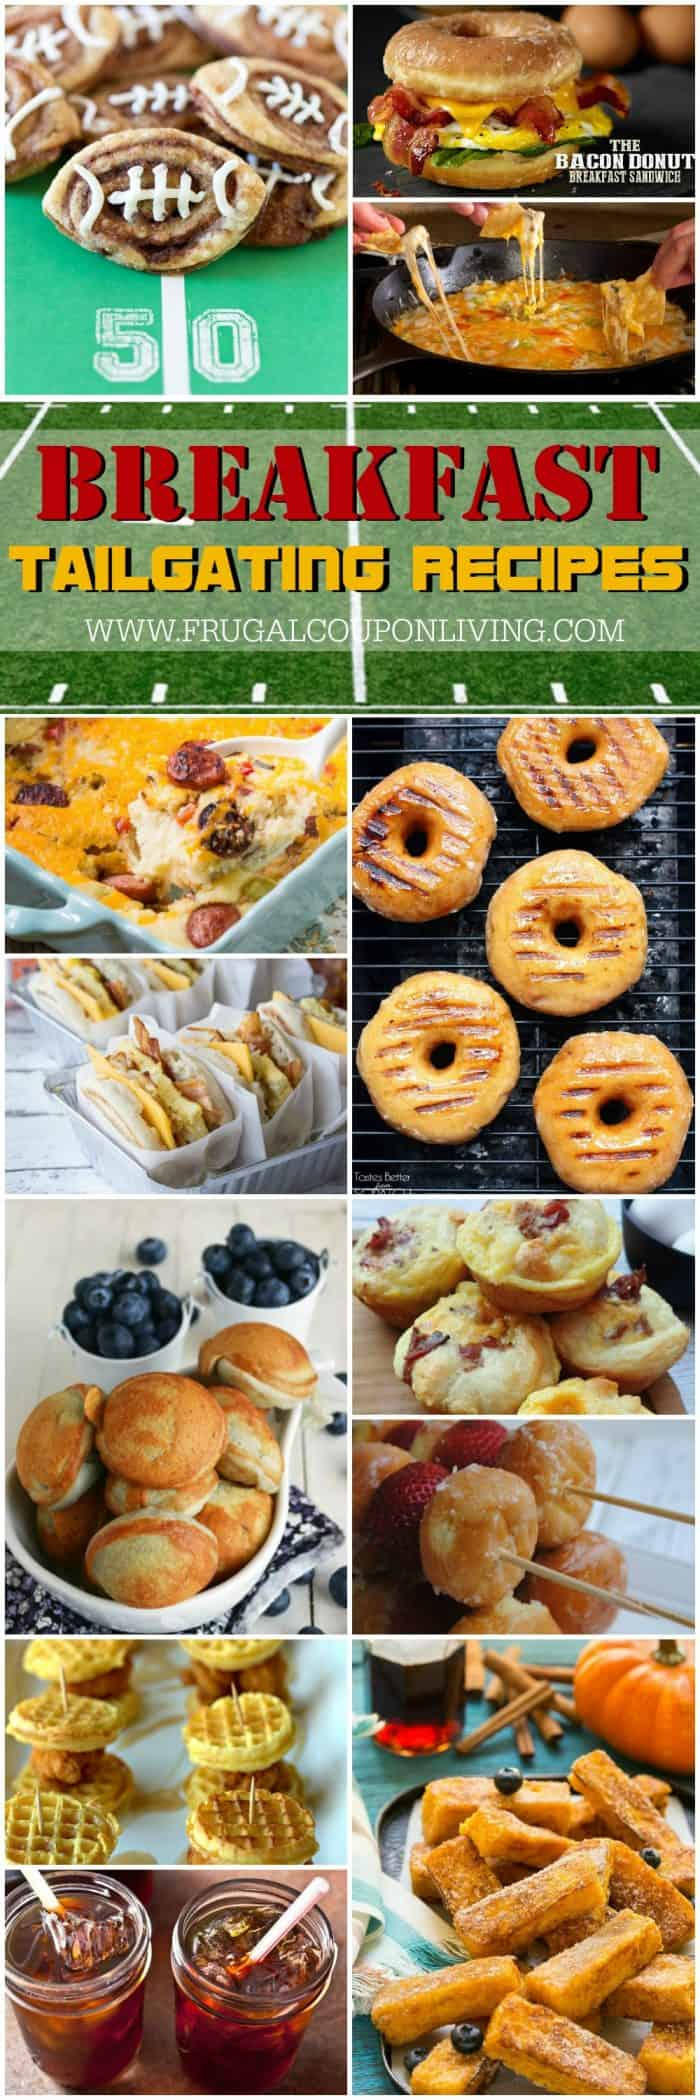 tailgate-recipes-for-breakfast-long-frugal-coupon-living